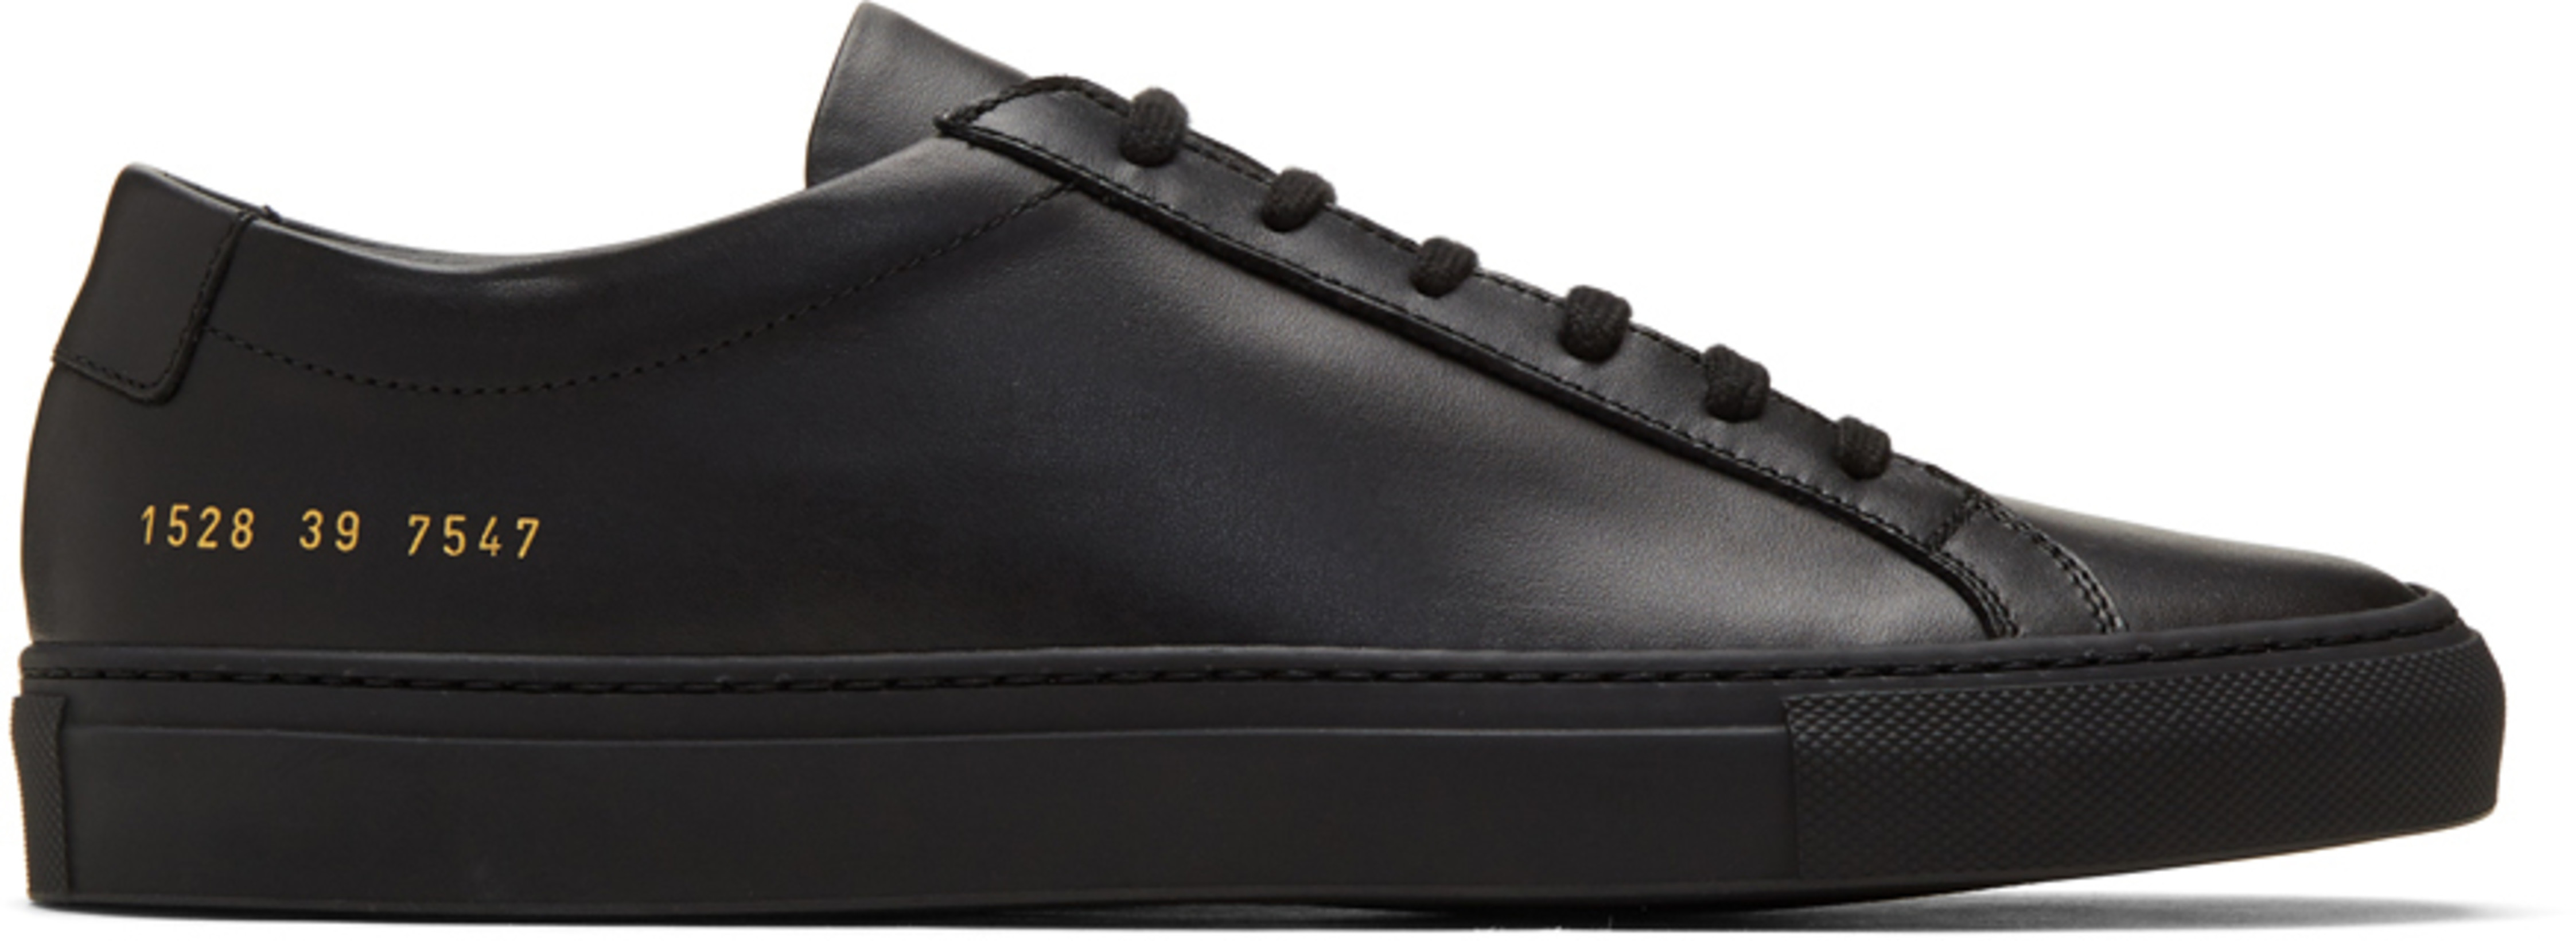 Common Projects アキレス ロー